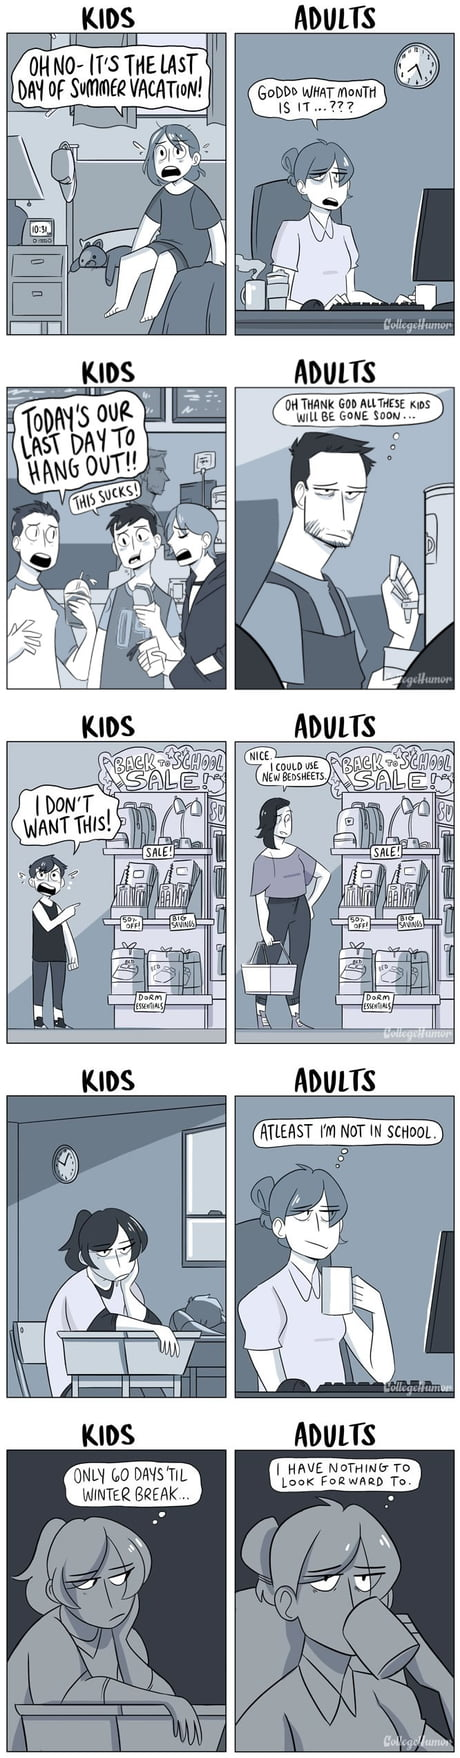 Back To School Season For Kids Vs Adults